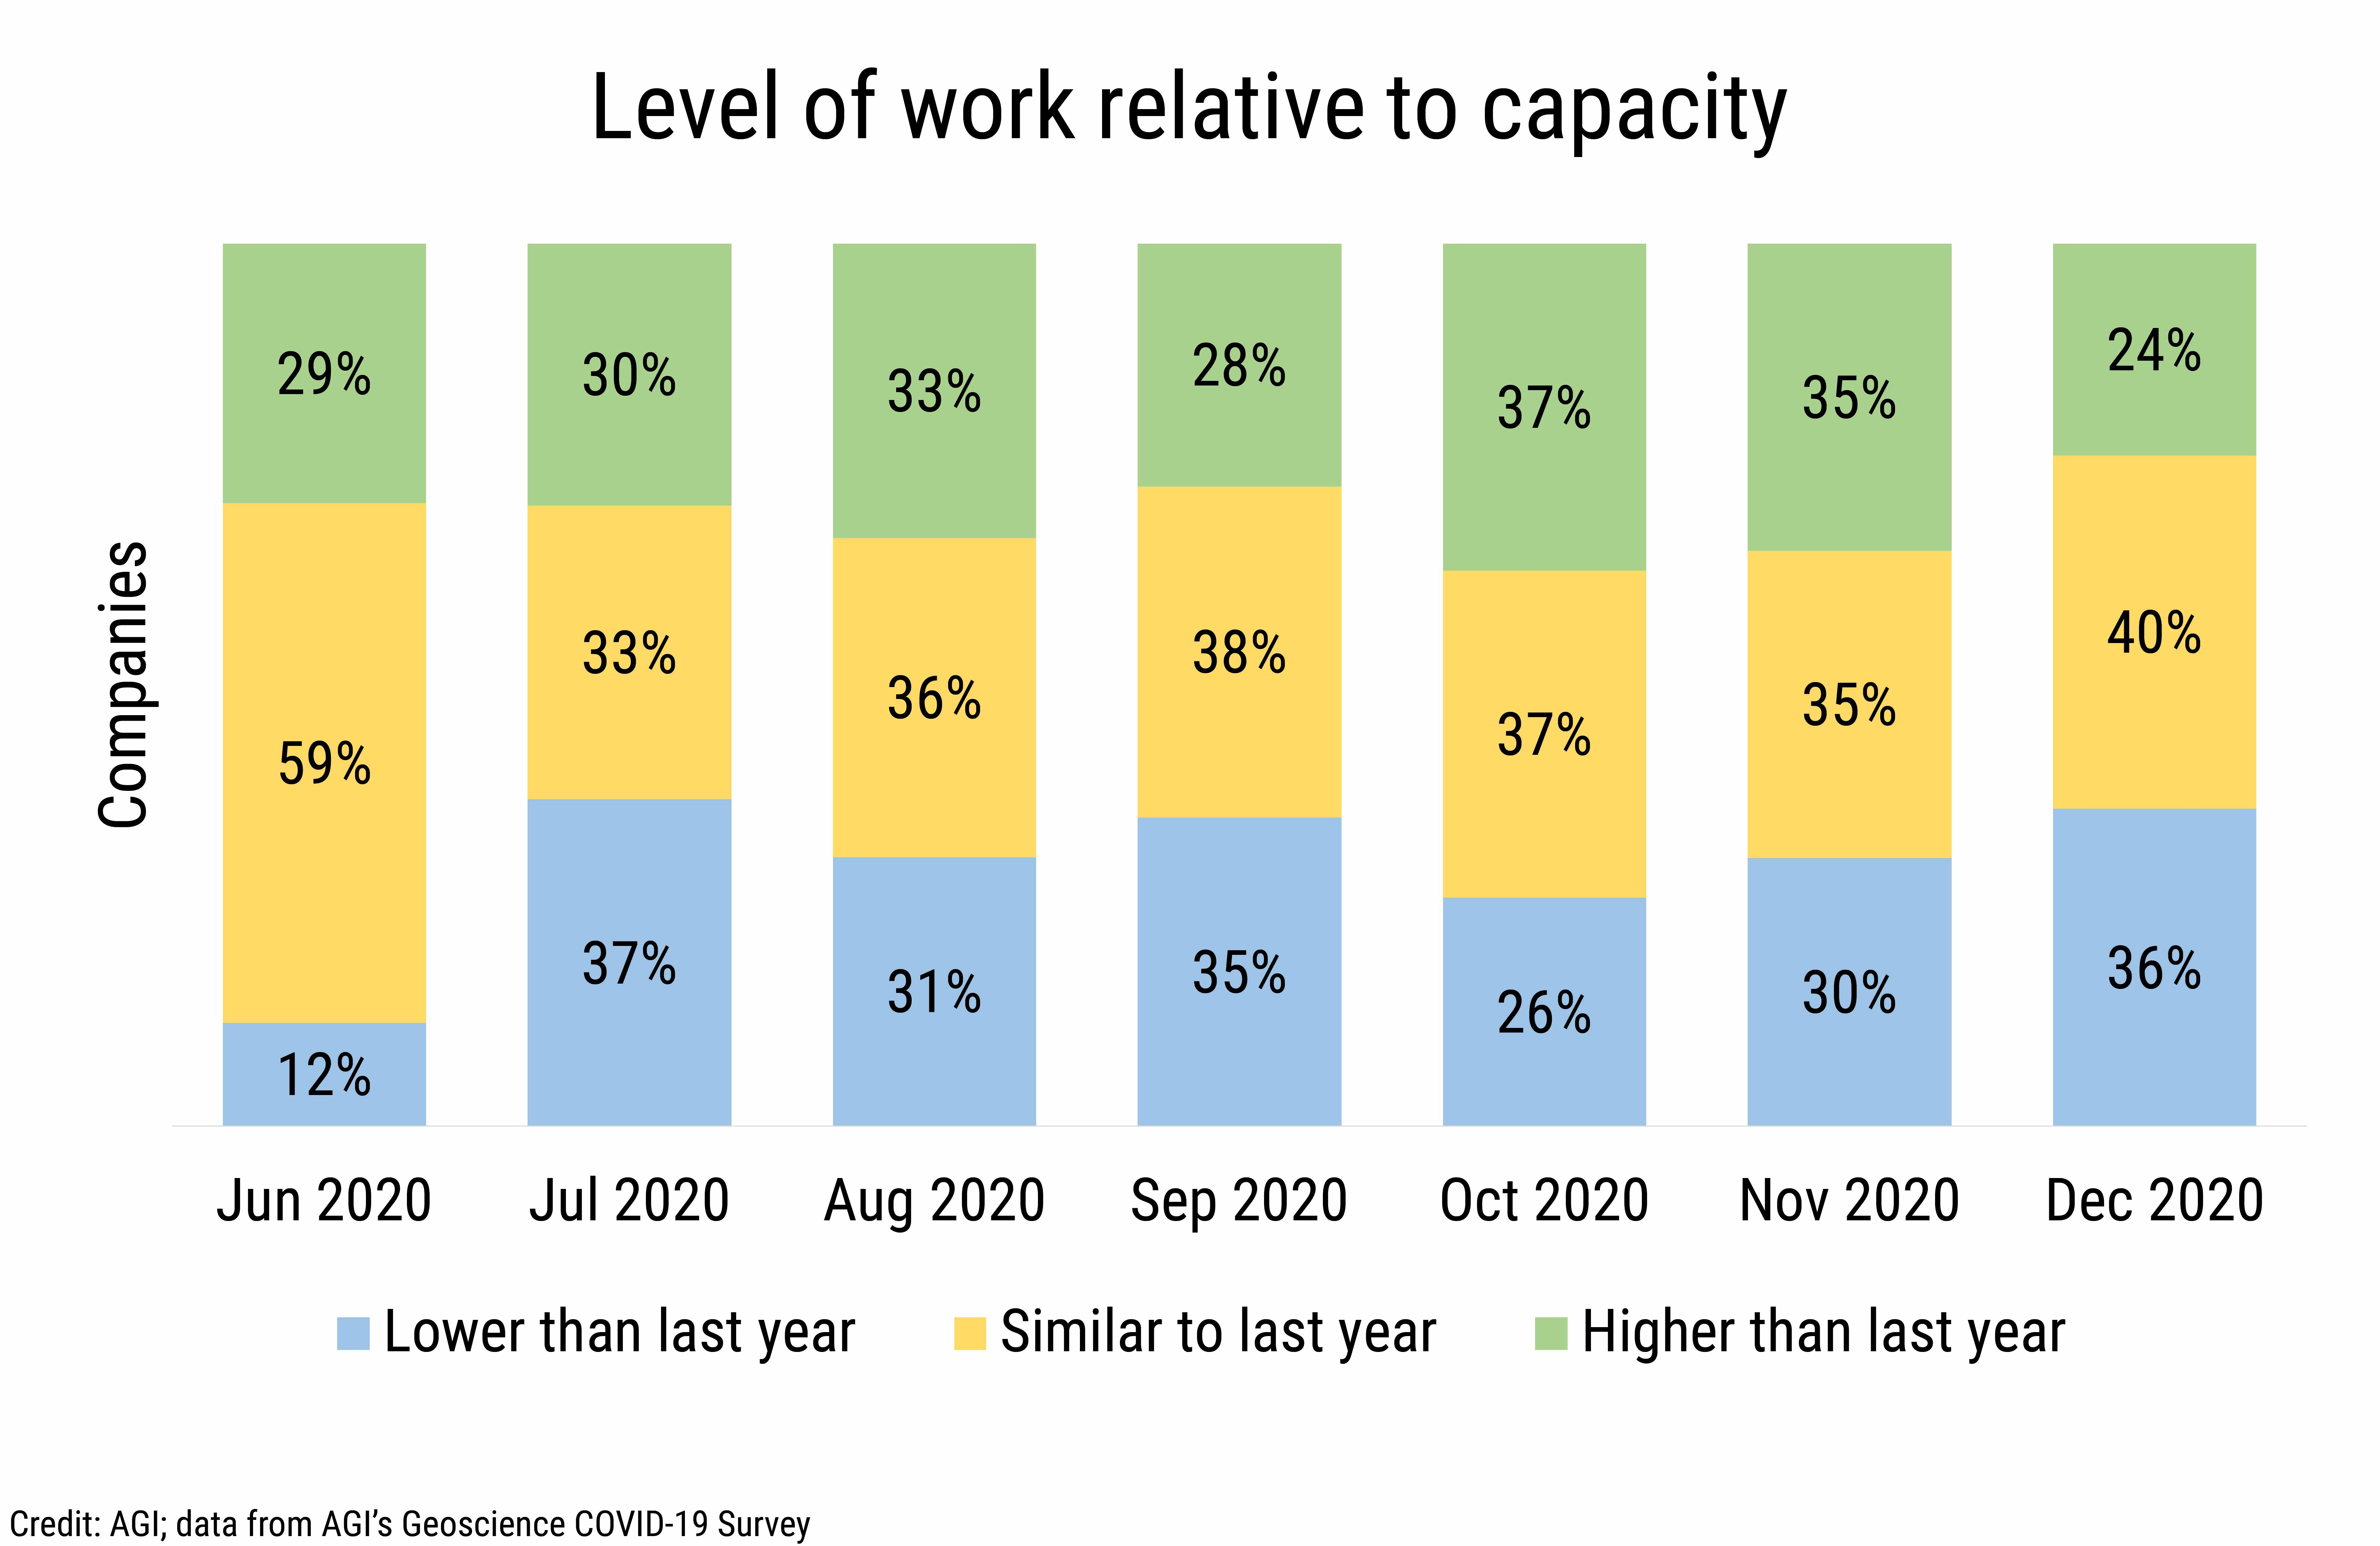 DB_2021-004_chart02: Level of work relative to capacity (Credit: AGI; data from AGI's Geoscience COVID-19 Survey)